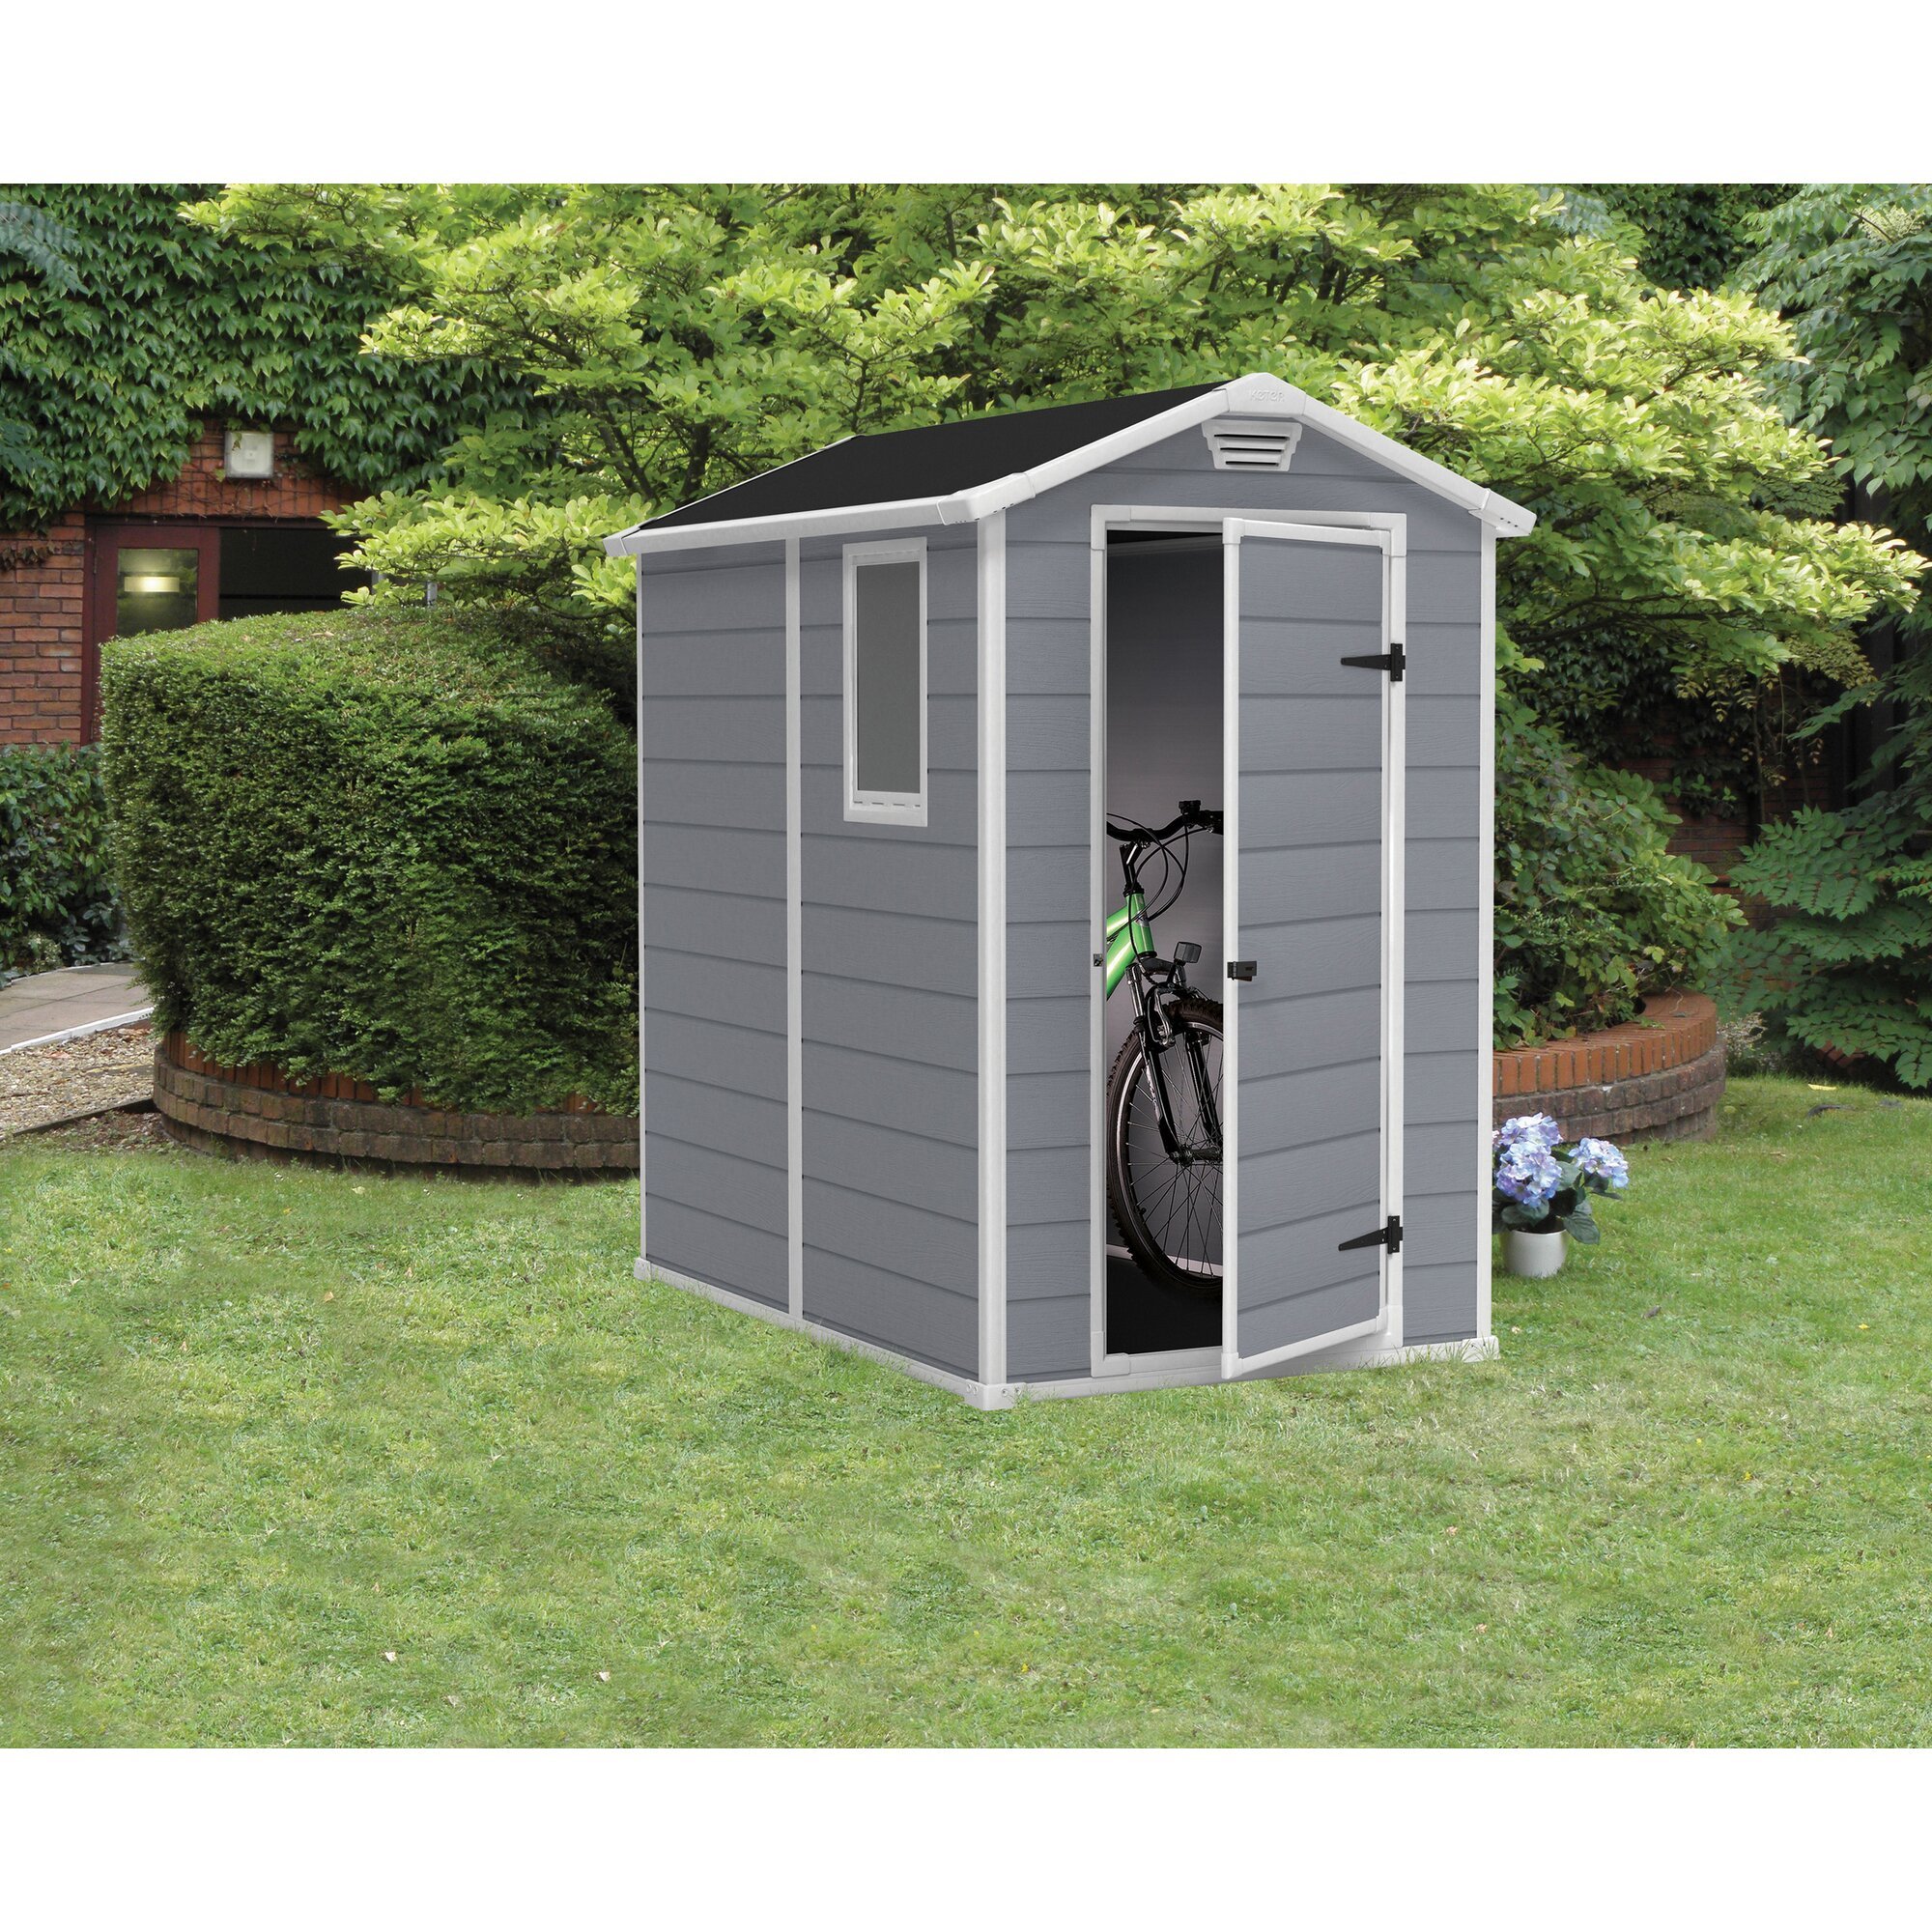 Keter Manor 4 Ft W X 6 3 Ft D Resin Vertical Storage